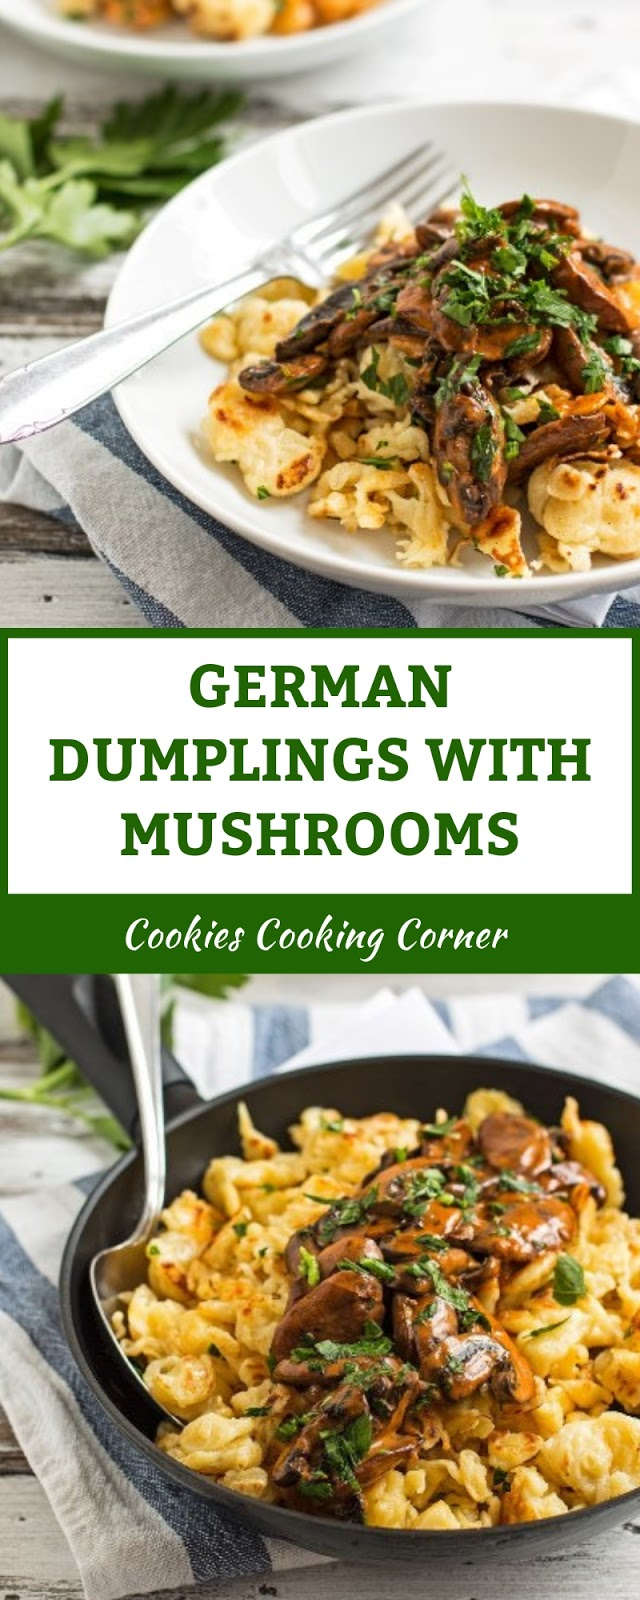 GERMAN DUMPLINGS WITH MUSHROOMS